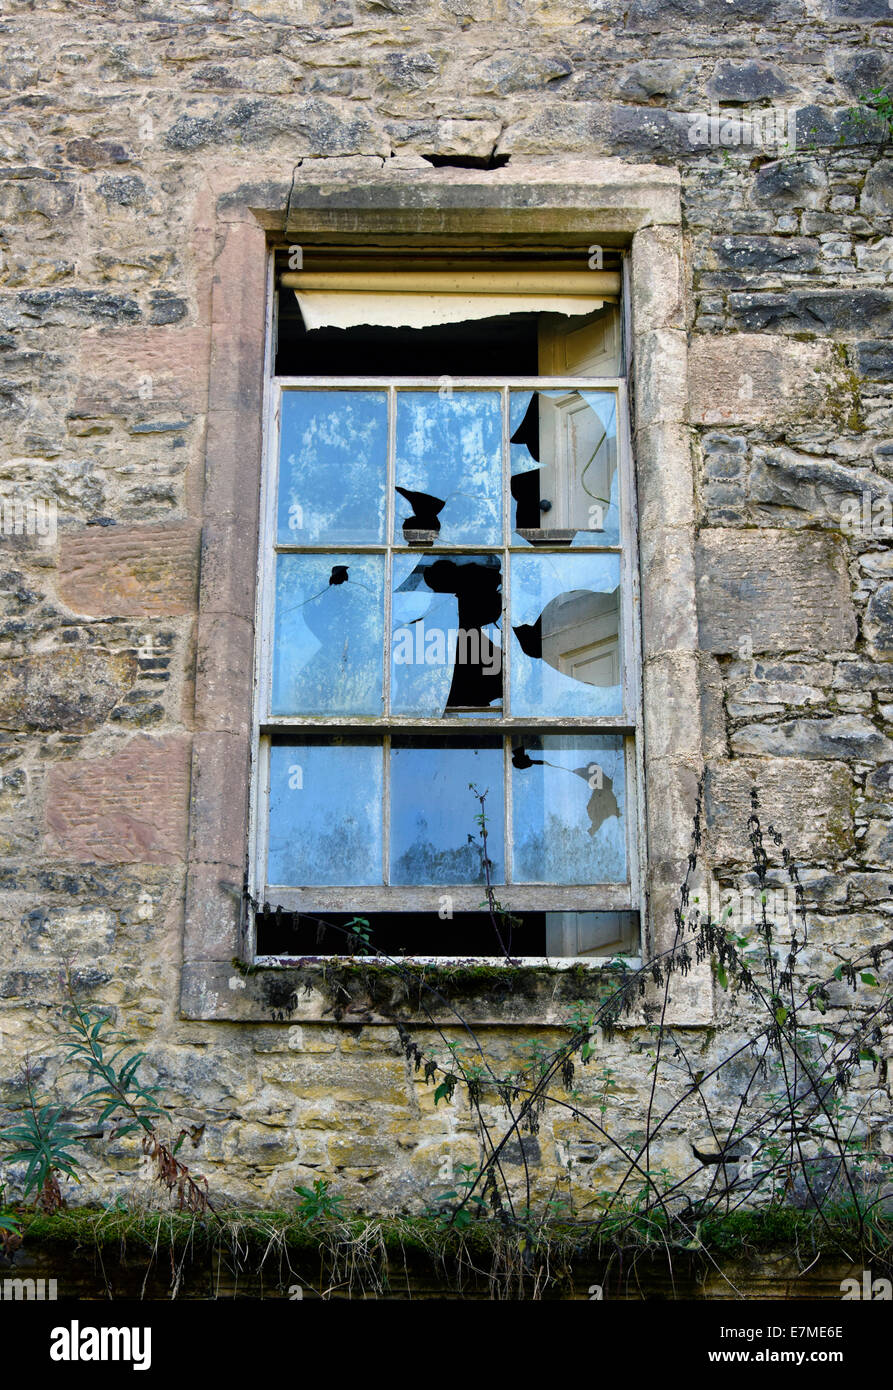 Broken window. Eastend House, Carmichael Estate, South Lanarkshire, Scotland, United Kingdom, Europe. - Stock Image